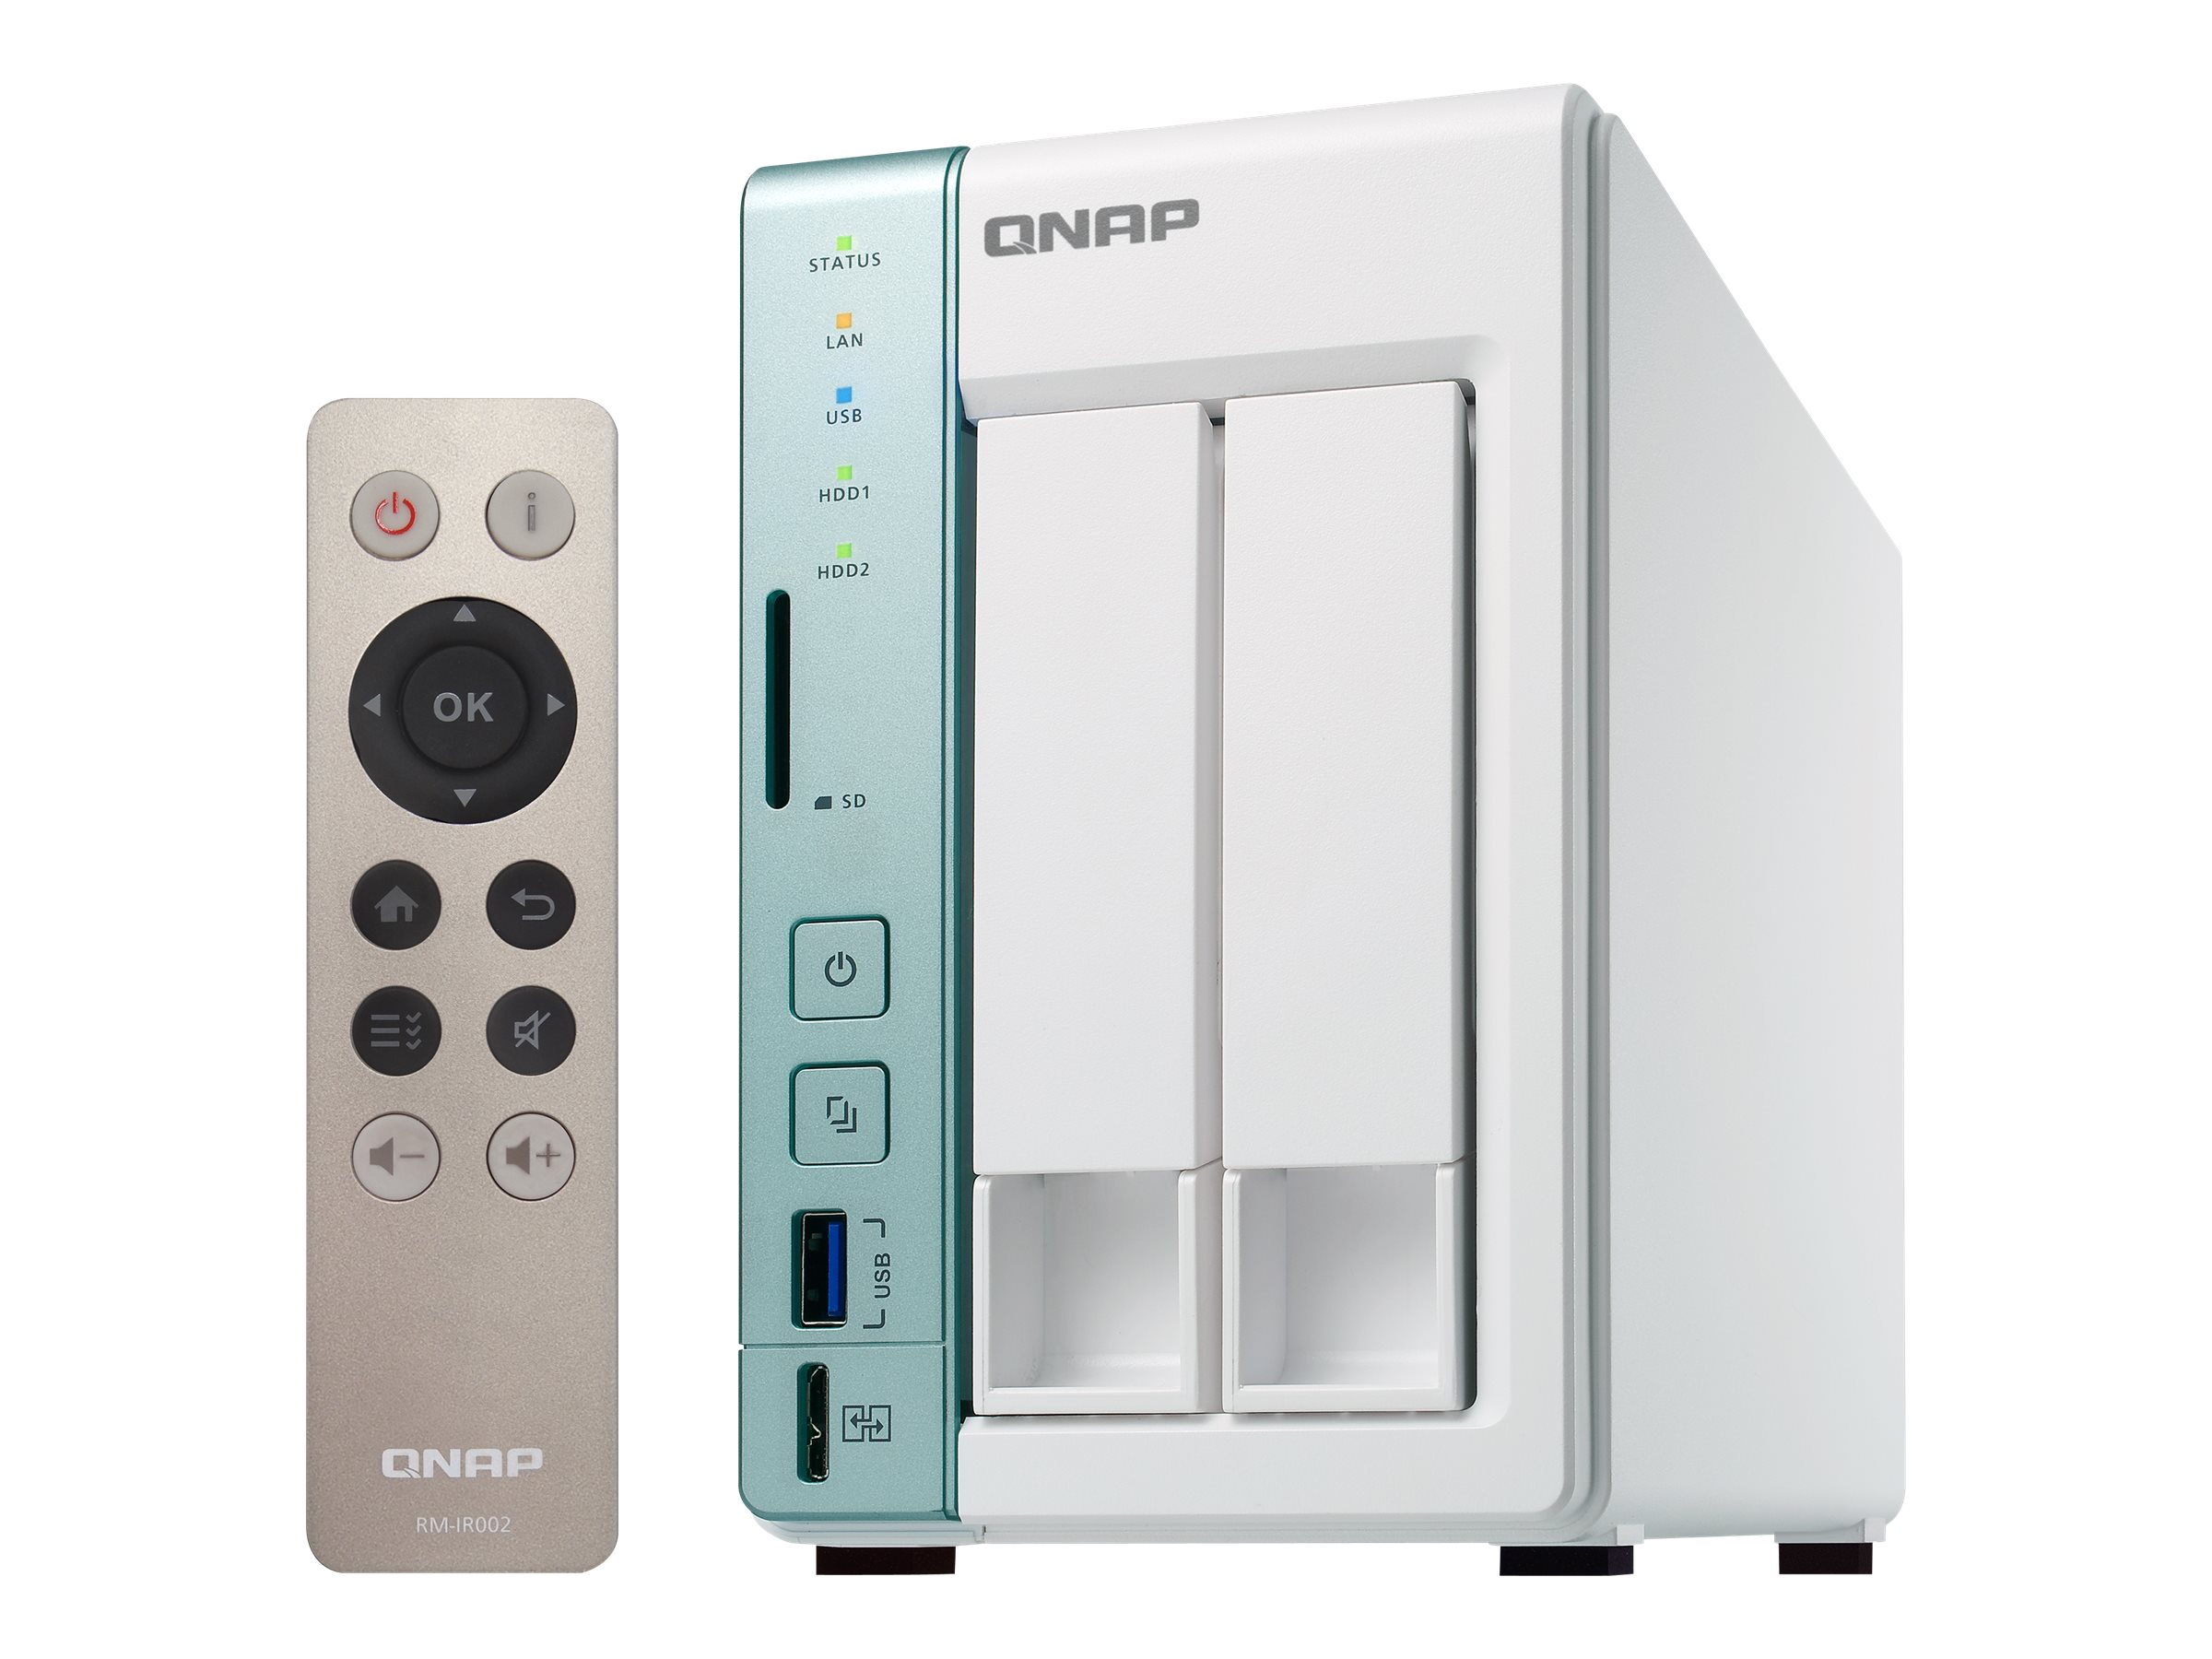 Qnap 2-Bay TS-251A Personal Cloud NAS DAS w  USB Direct Access, TS-251A-4G-US